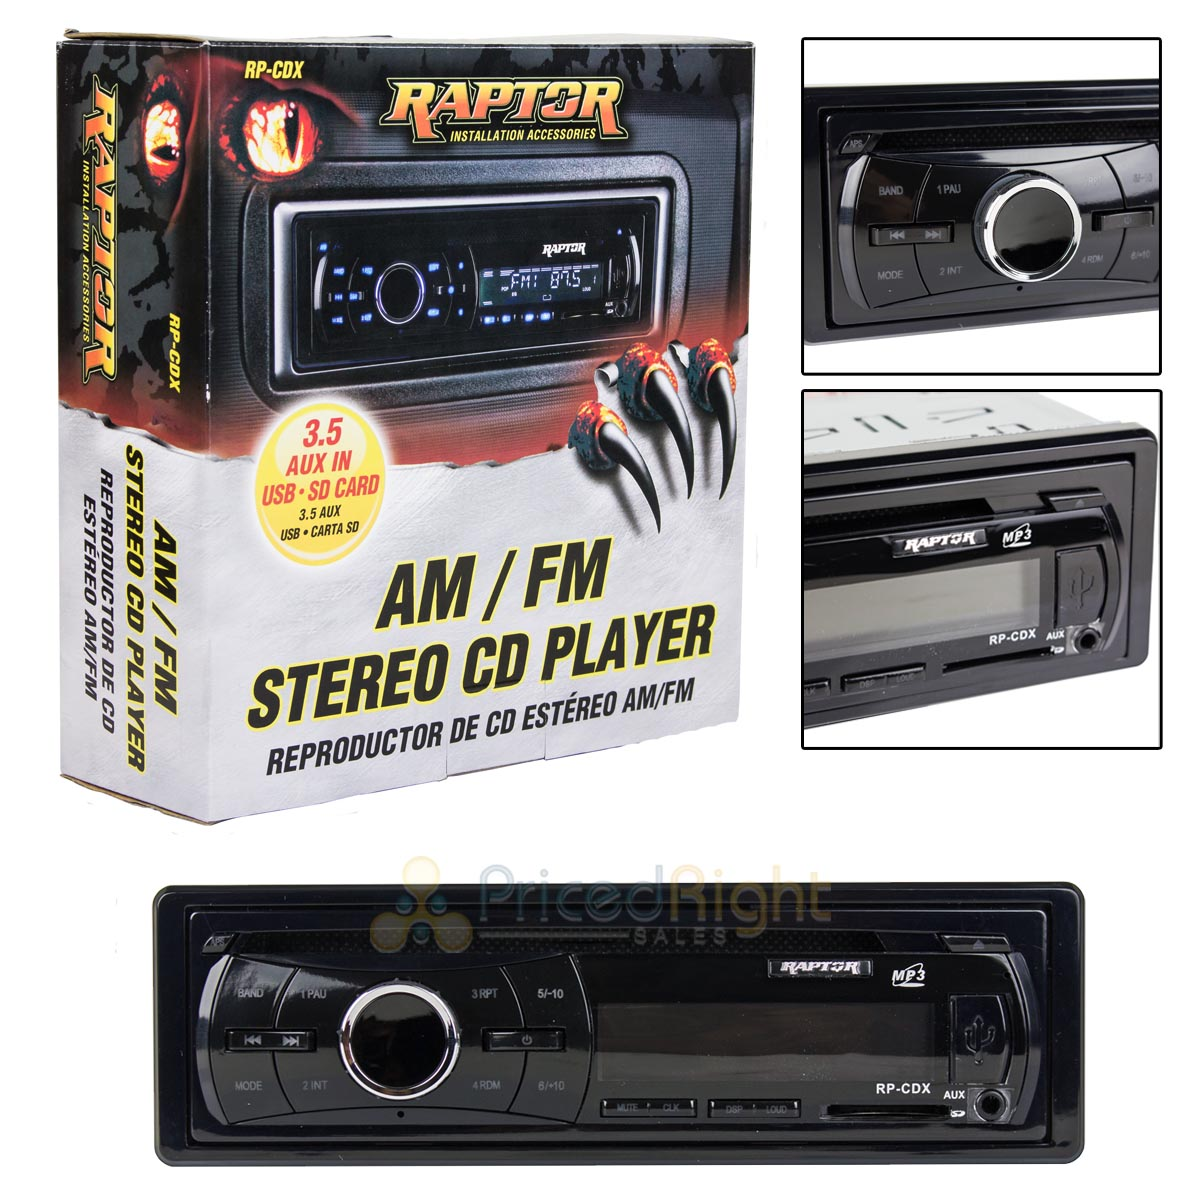 Details about Single DIN AM FM Stereo CD Player Raptor Installation  Accessories RP-CDX AUX USB